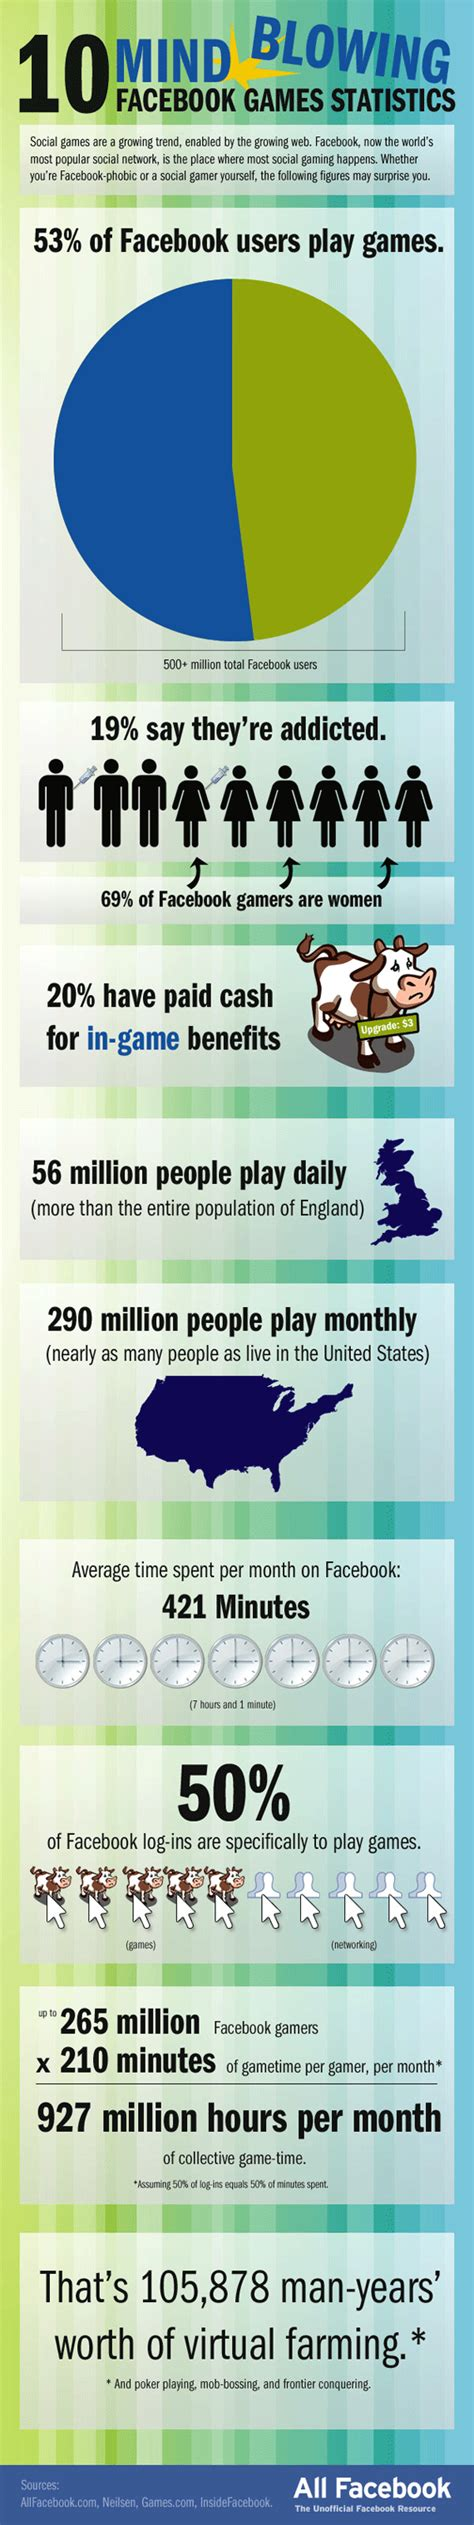 match incredible stats and 10 incredible facebook game facts trends pastorgear com